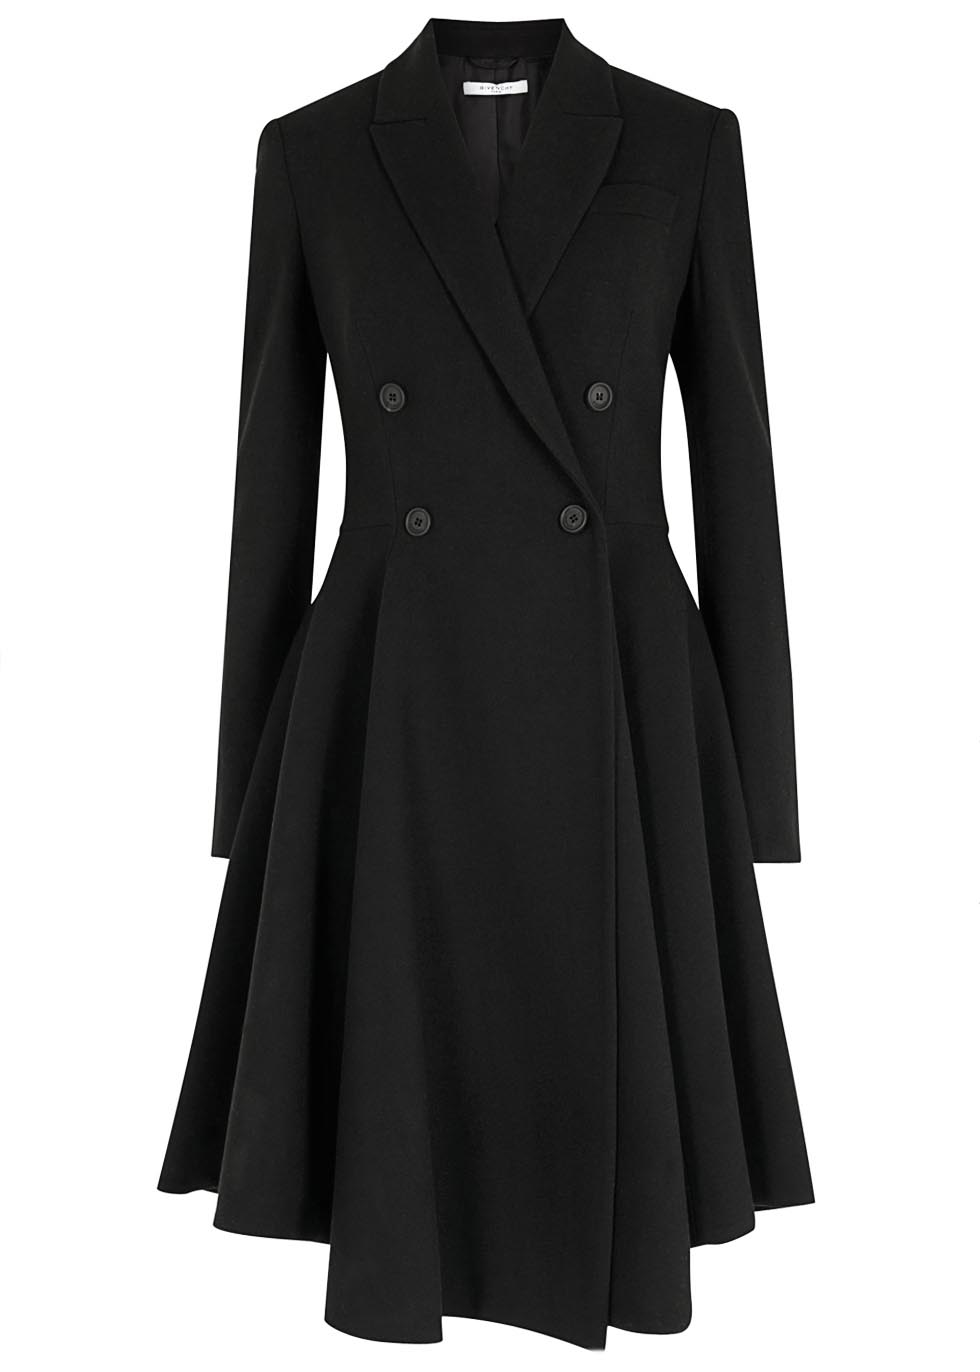 Women's Trench Coats & Peacoats: Sleeveless & Flared. Trench coats and peacoats are some of the most iconic clothing items for women. No matter what's underneath, throw on a trench coat and you will emanate allure and sophistication. Whether long or short, women's trench coats do double duty, keeping you both warm and totally chic.